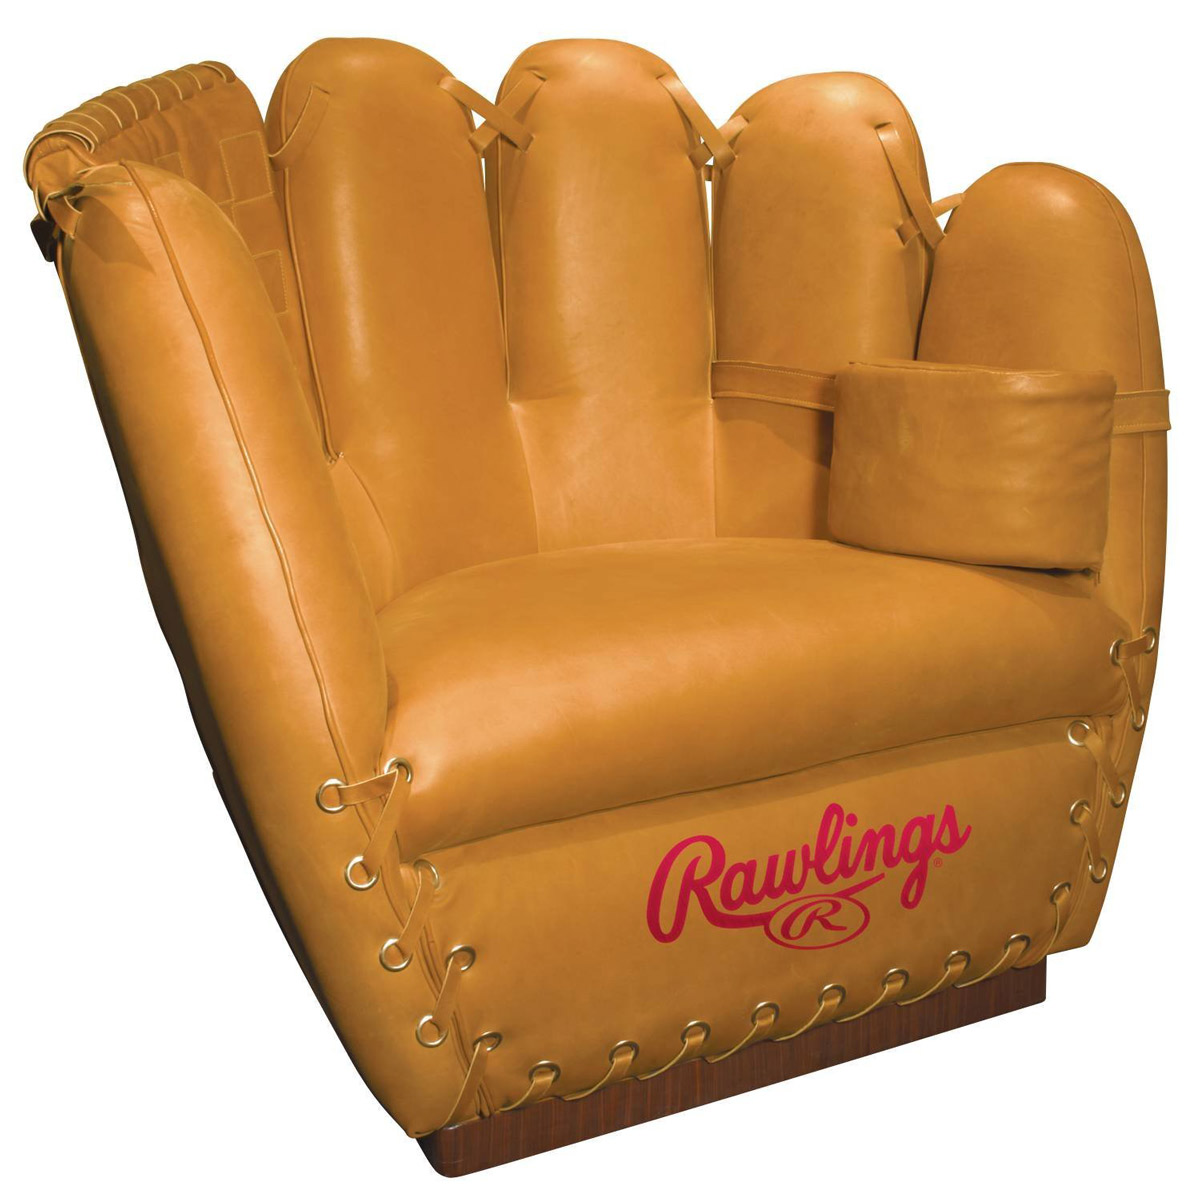 Details about Baseball Chair Ottoman Add Some Fun To Your Room New ...